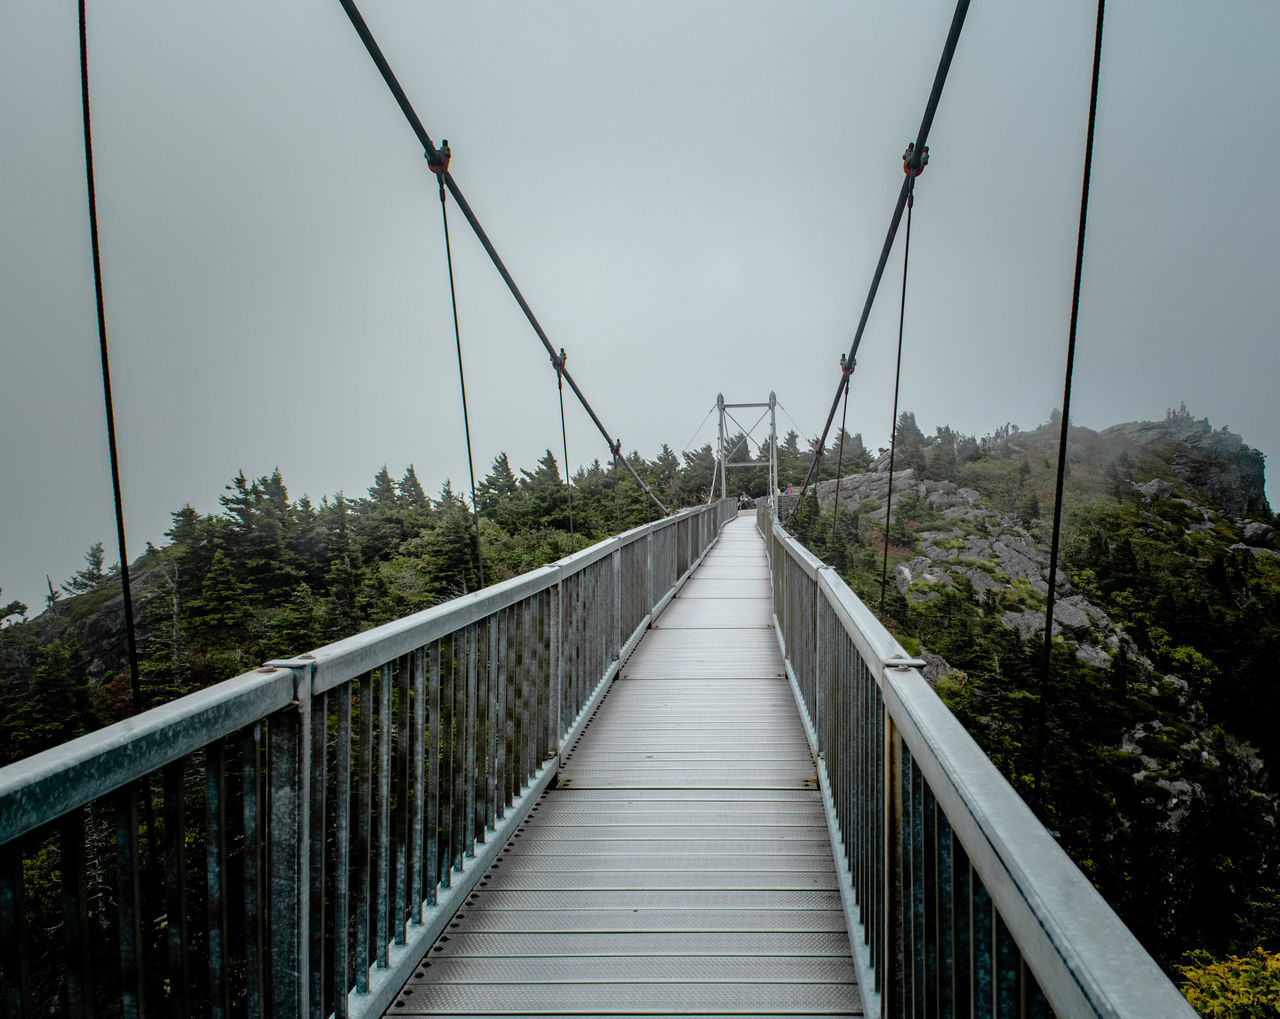 This is Mile High Bridge on top of Grandfather Mountain in North Carolina. This is a shot with no one on it which is definitely a waiting game. It is a very busy landmark. This was taken when I first arrived in the morning. It was very foggy. You could say my head was in the clouds :) The next shot shows the bridge an hour later with the fog lifted, the blue sky shining through, and my head no longer in the clouds lol Architecture Architecture Bridge Bridge - Man Made Structure Built Structure Cable Composition Connection Diminishing Perspective Electricity  Electricity Pylon Engineering Ladyphotographerofthemonth Landscape Leading Long Narrow Pattern, Texture, Shape And Form Perspective Power Line  Railing Seeing The Sights Showcase: November Suspension Bridge Everything In Its Place